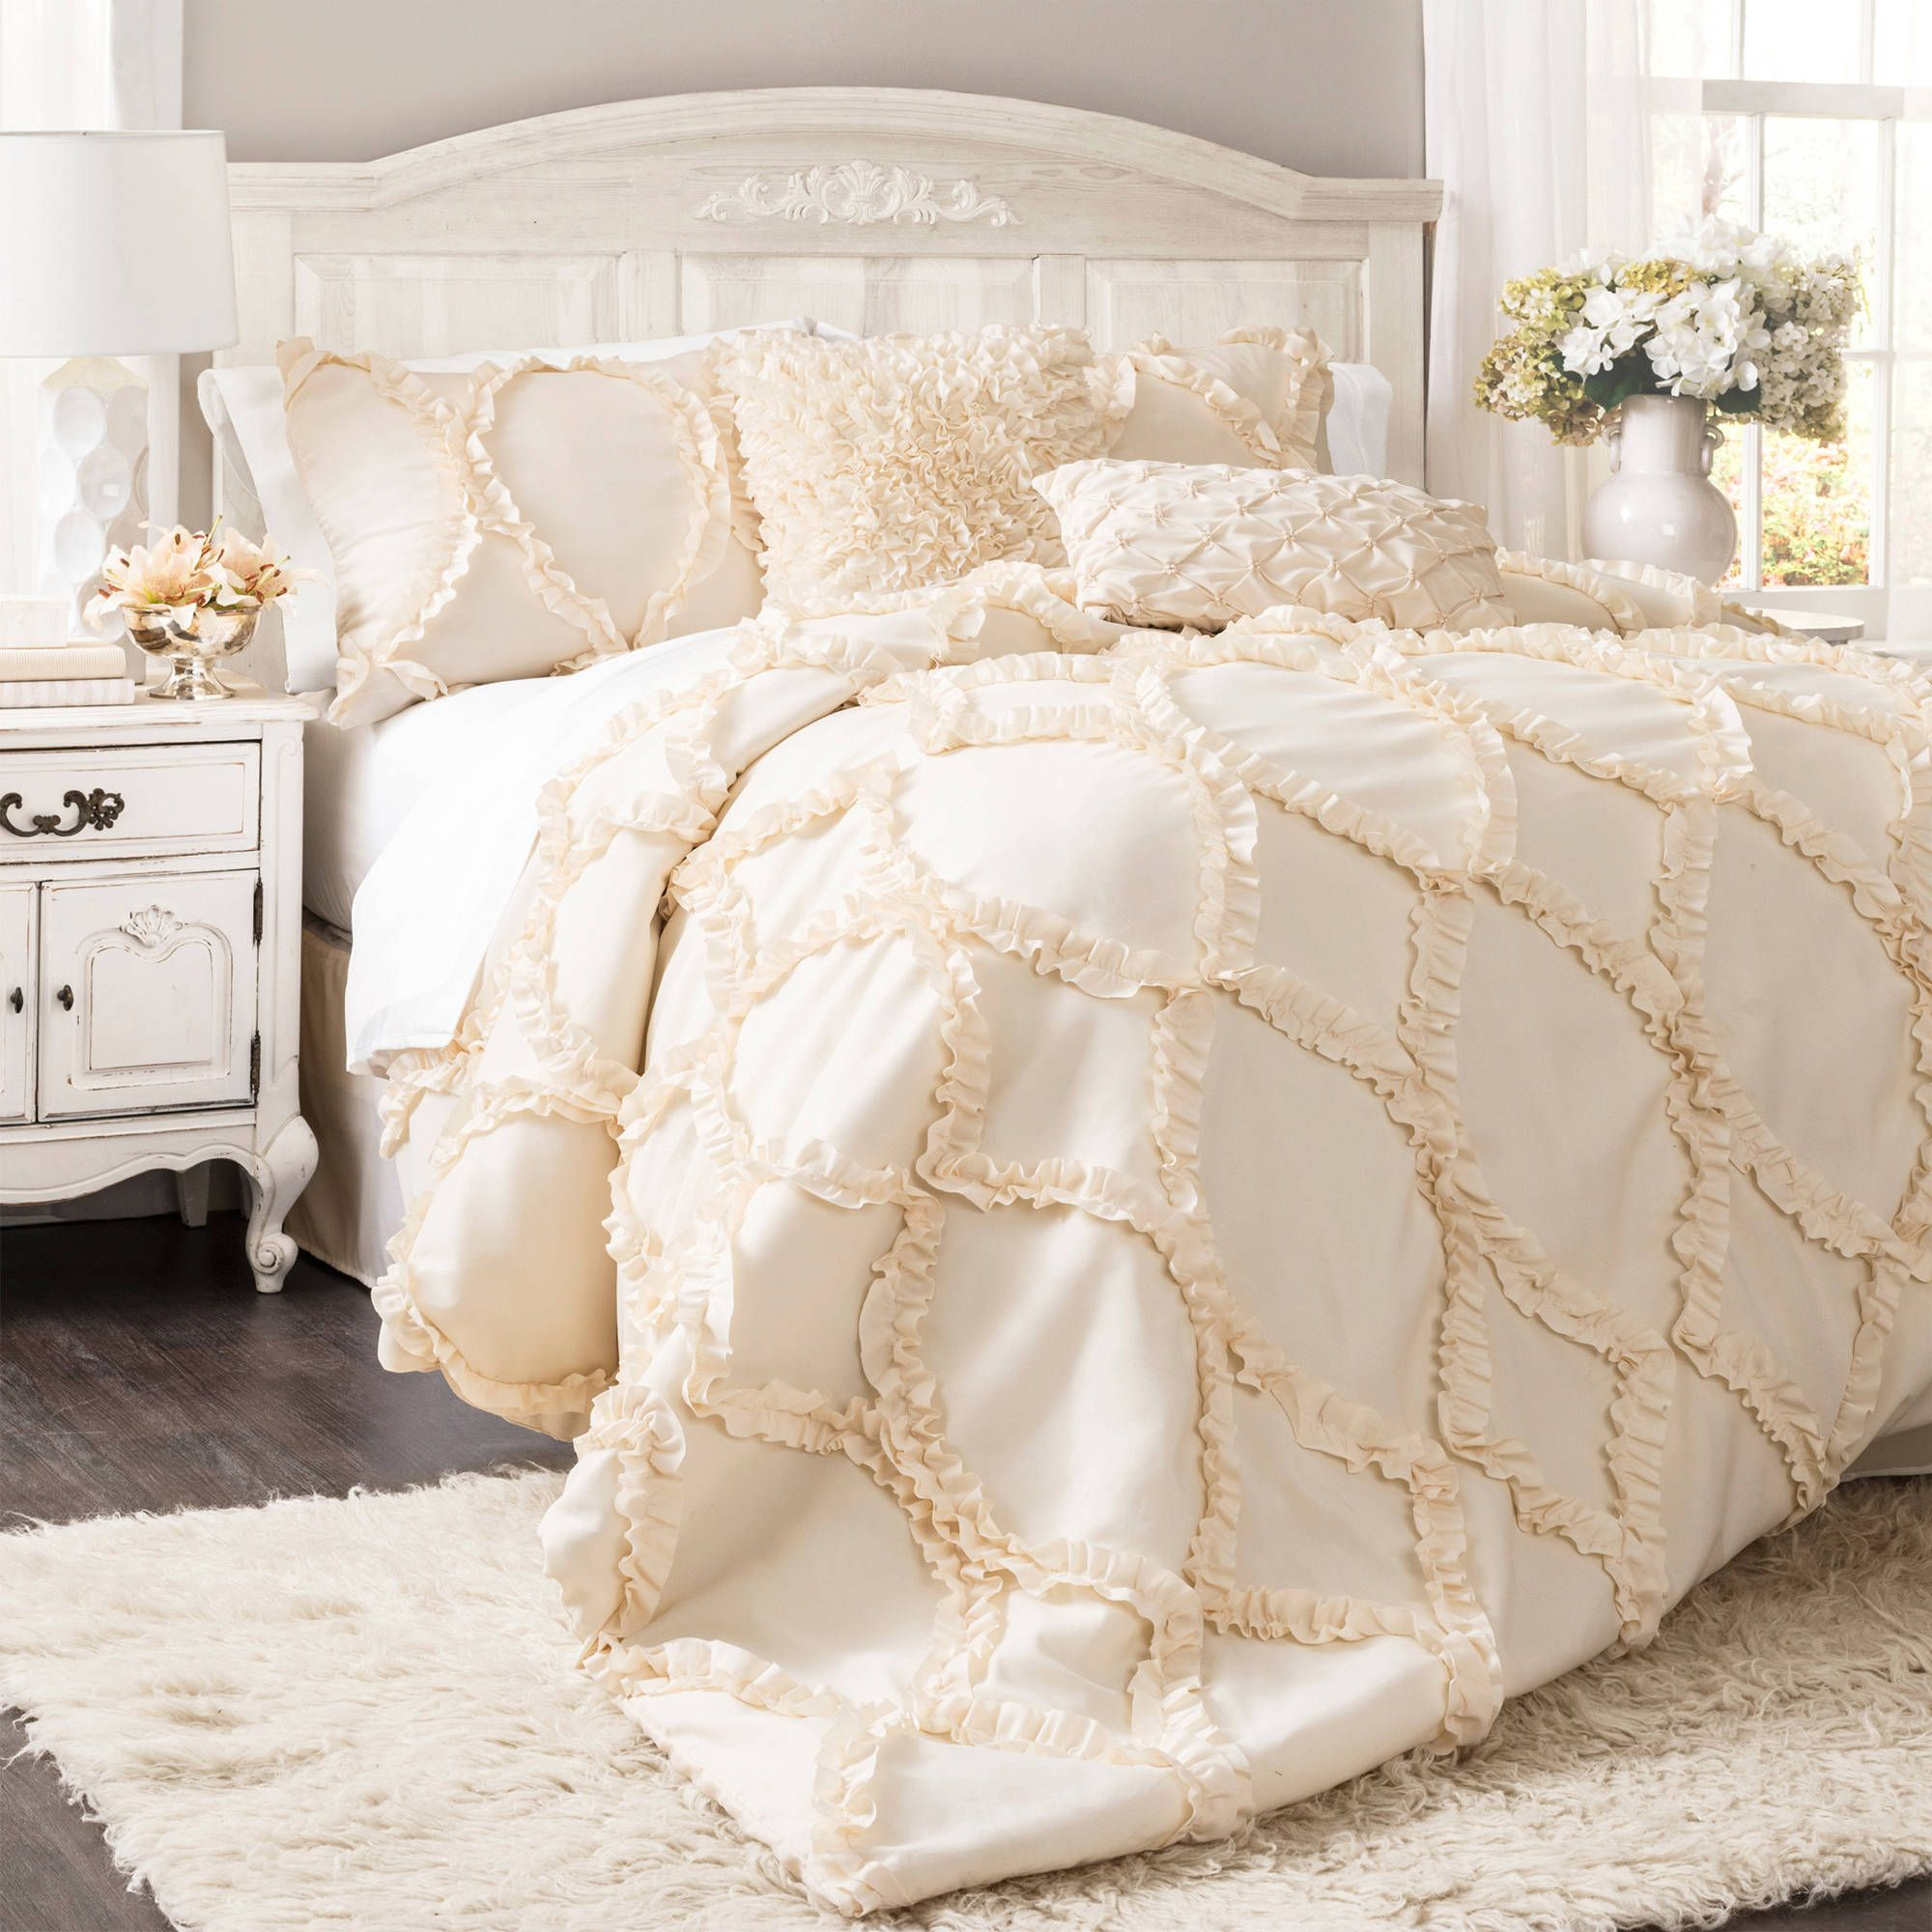 Give your bedroom a regal romantic flair